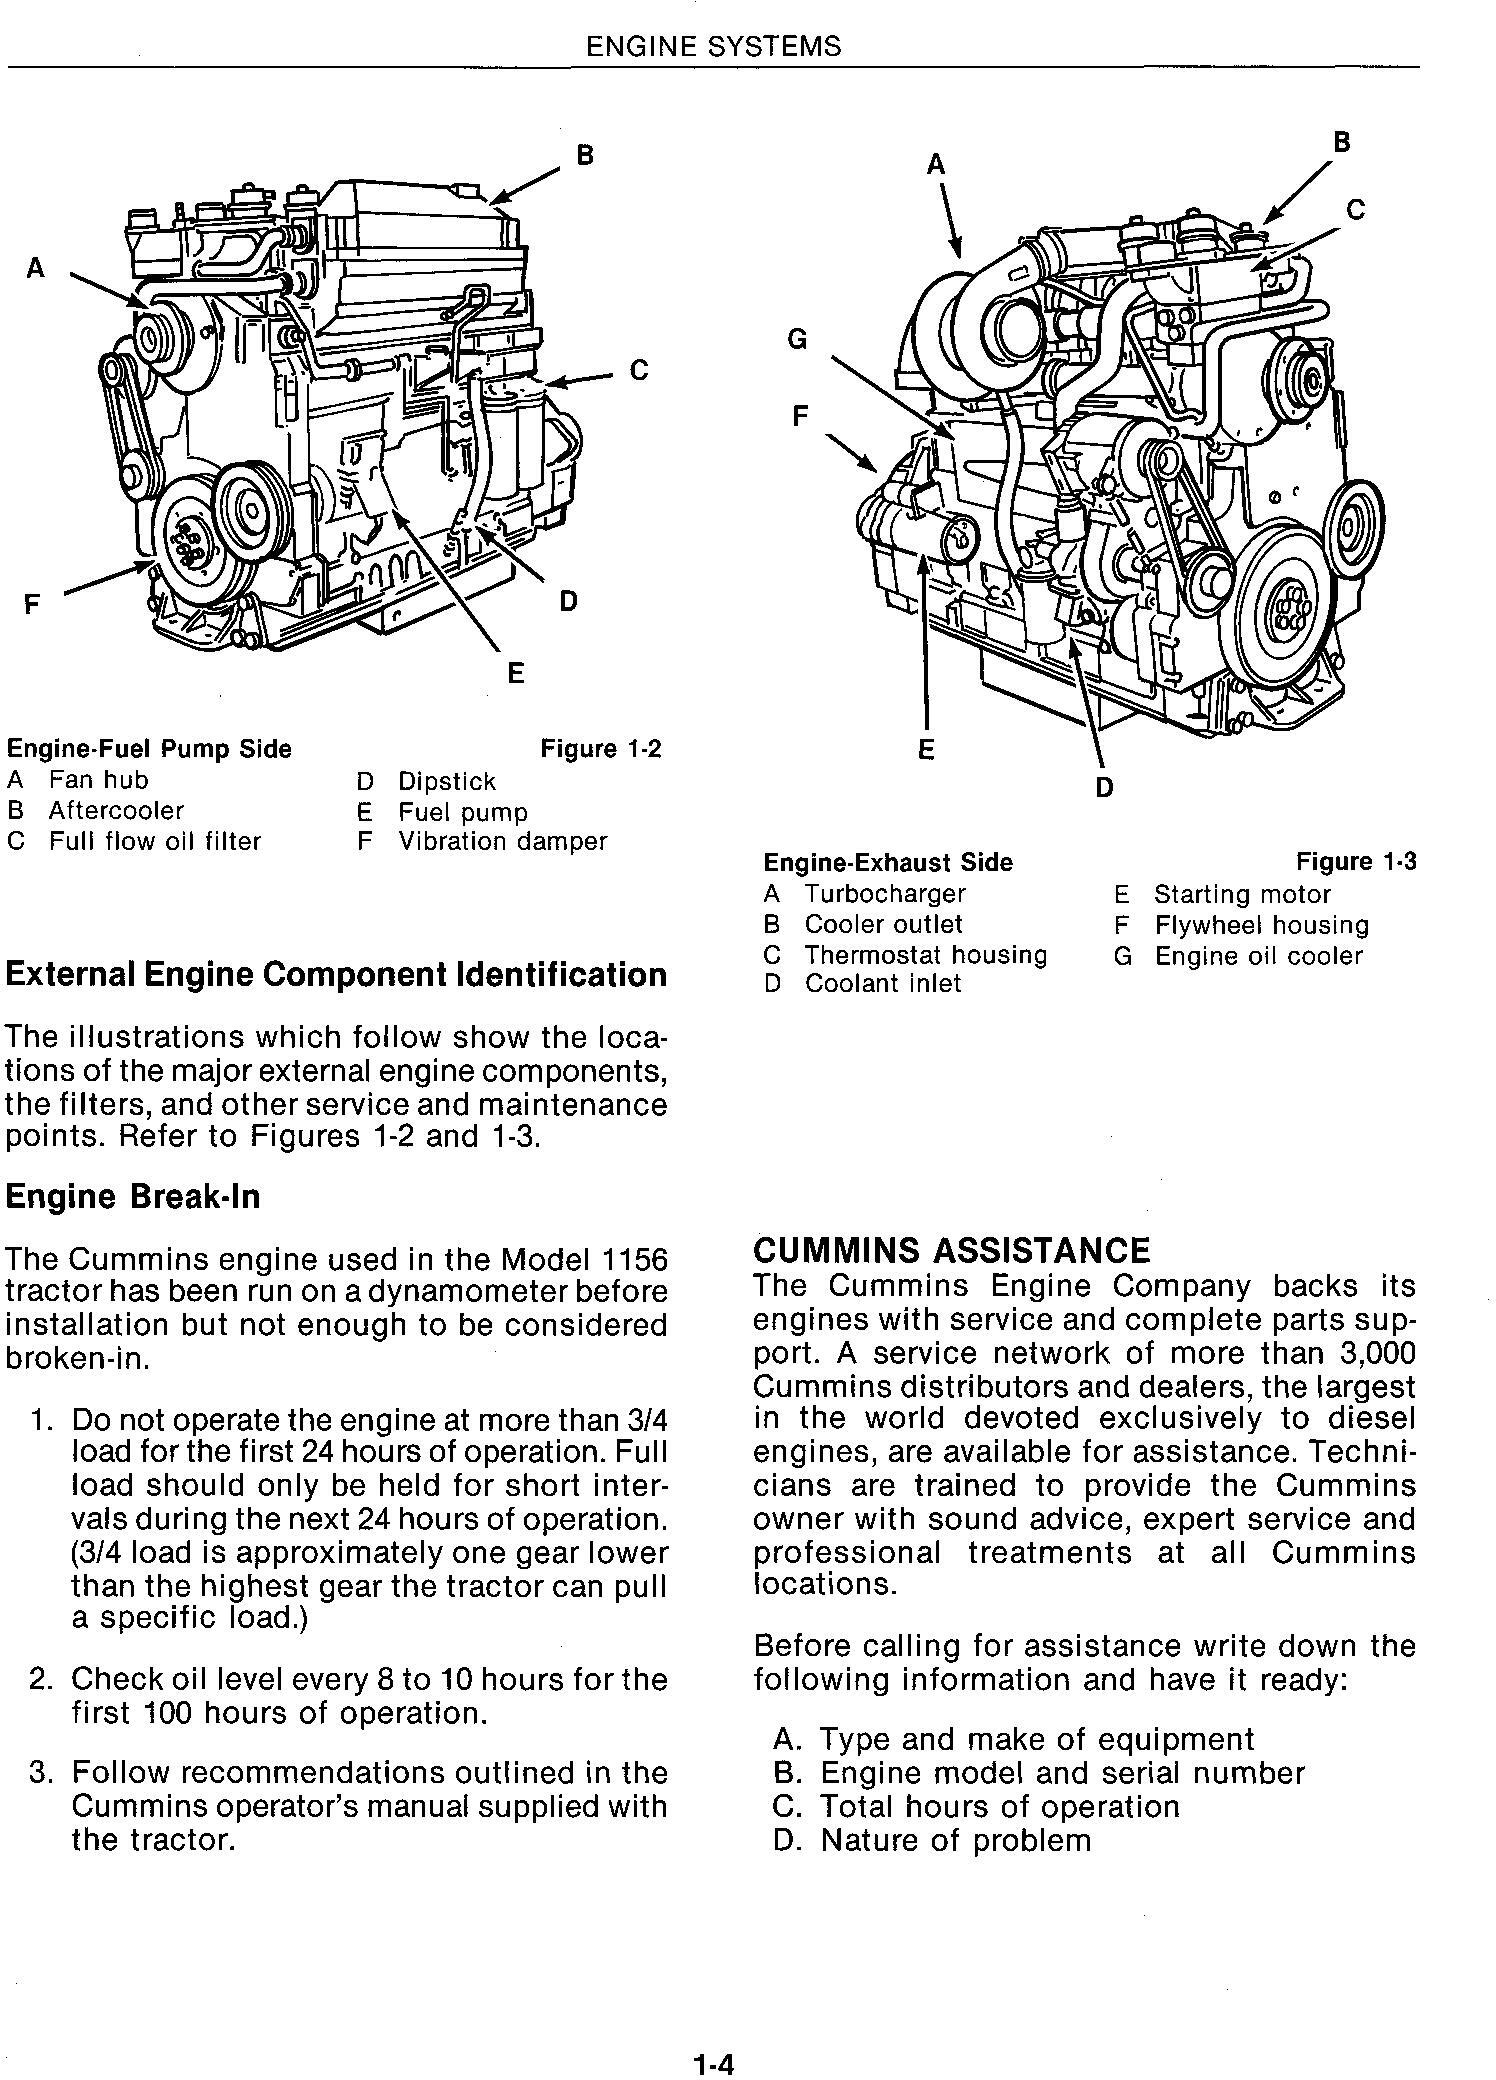 Ford Versatile 1156 Tractor Complete Service Manual - 2